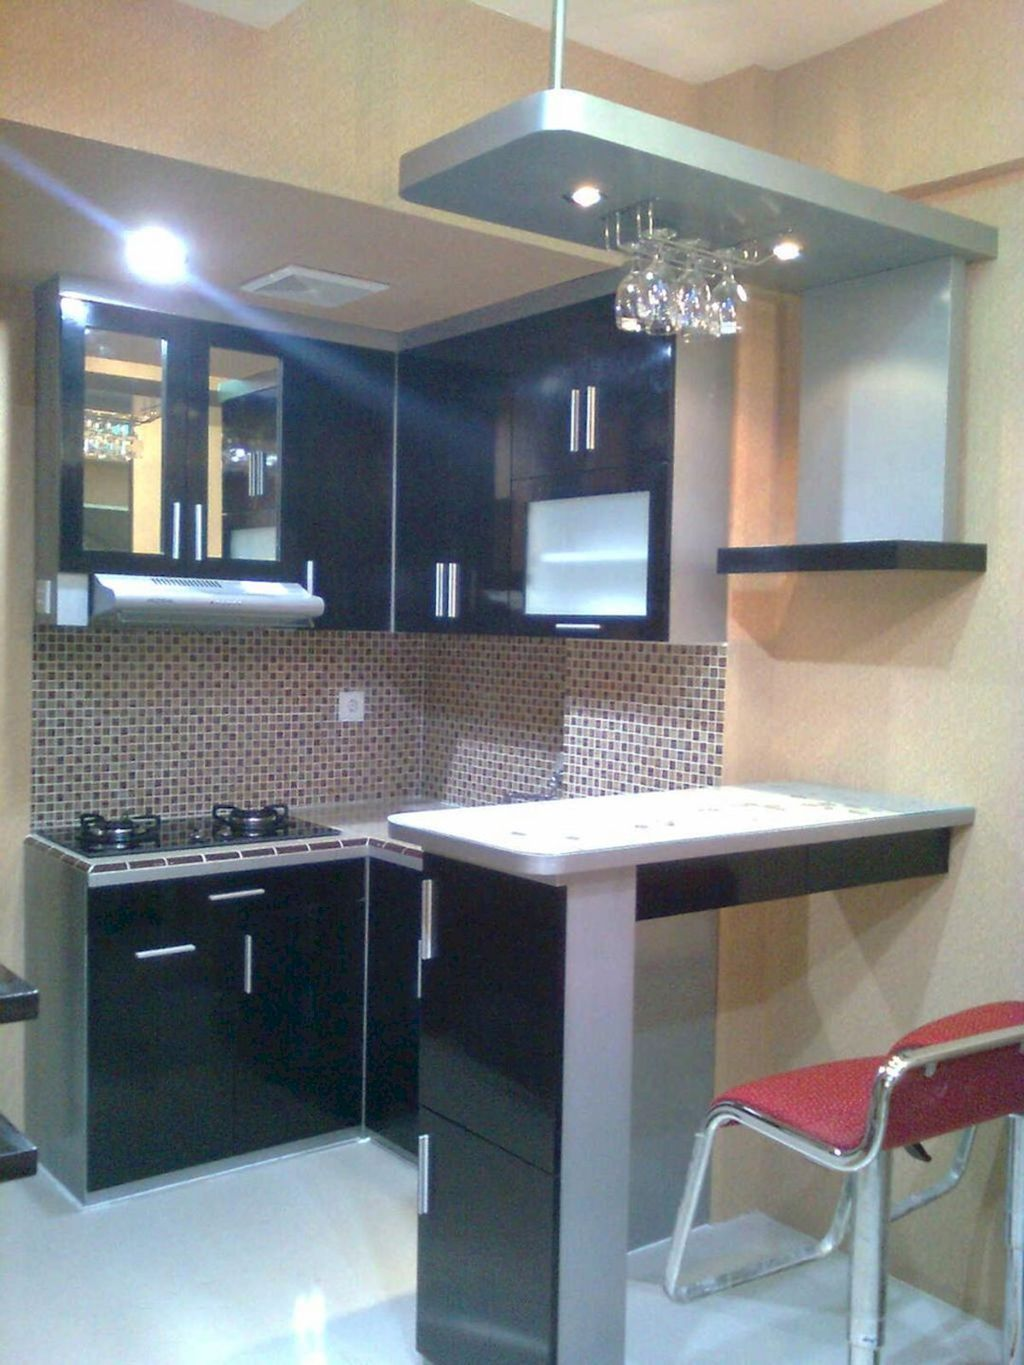 Awful Can Including A Dwelling Mini Bar Make You Safer Add Worth To Your Dwelling And Save Y In 2020 Kitchen Bar Design Small Kitchen Bar Kitchen Design Small